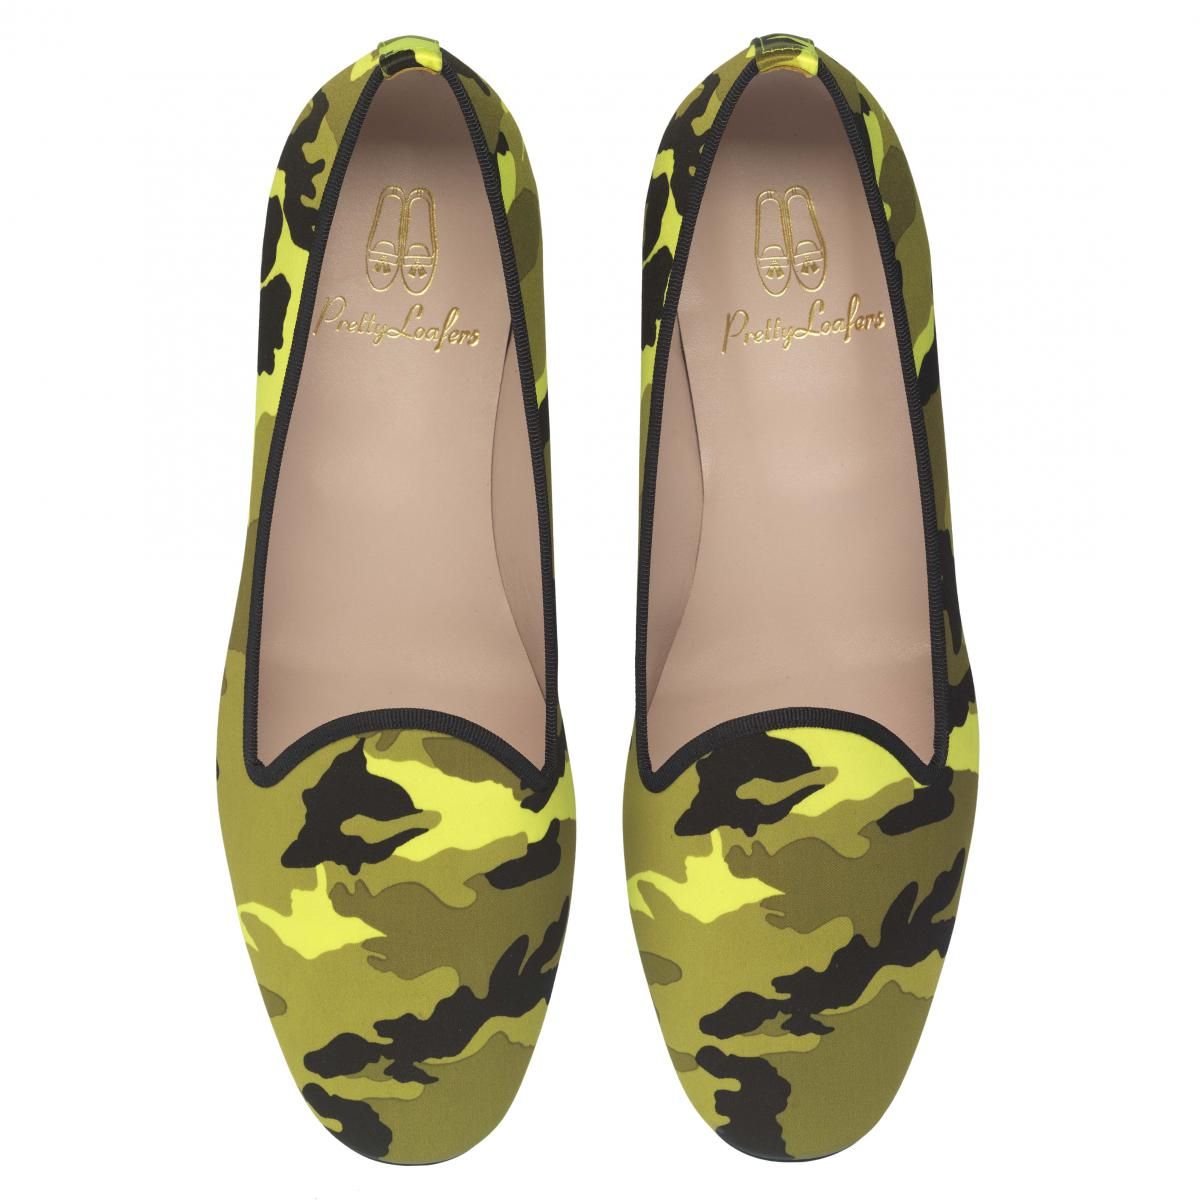 Faye fluo yellow camouflage - pair_PVP 129